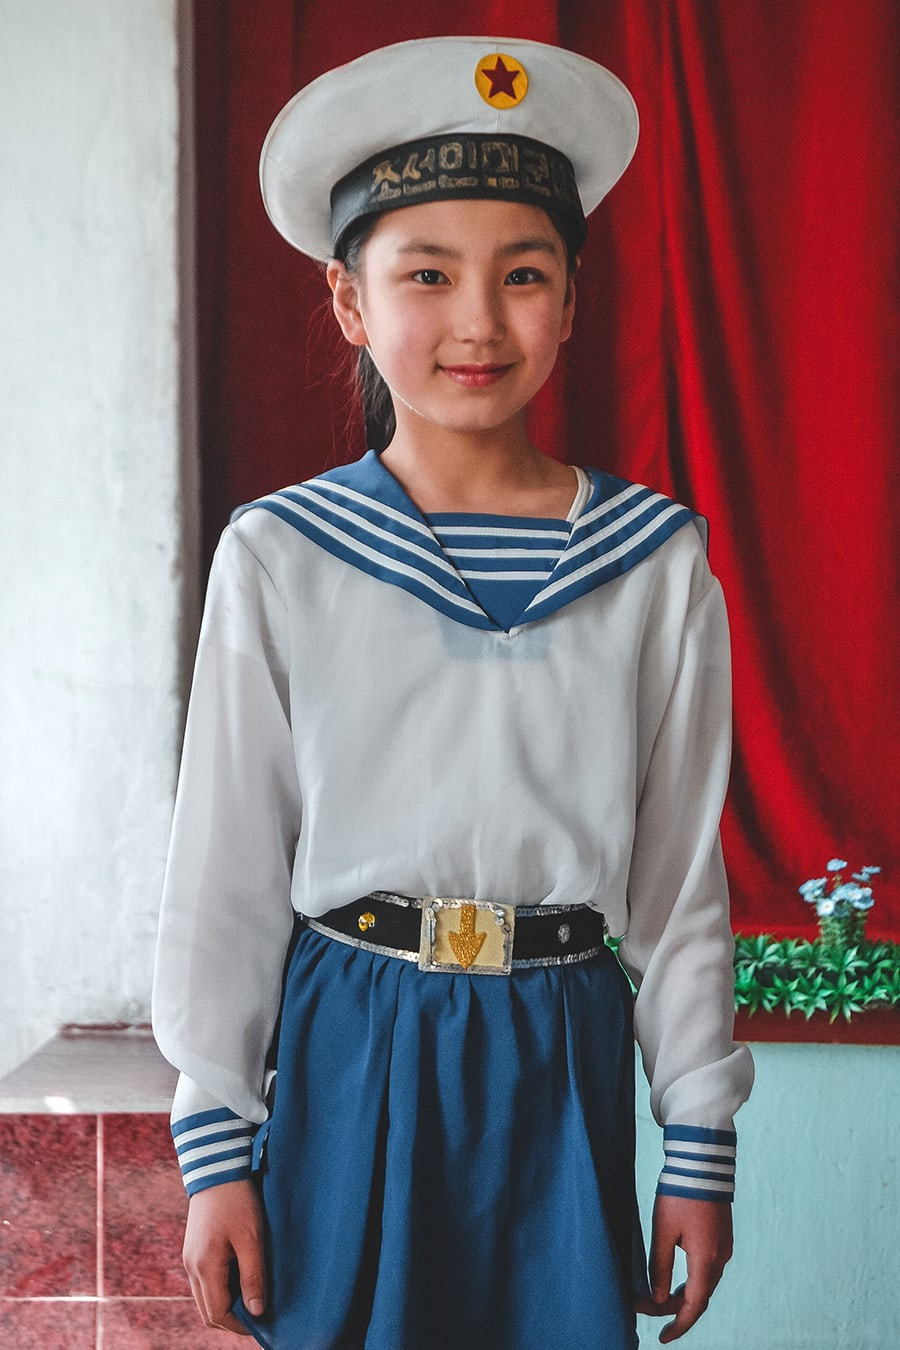 A middle school student posing for photos after performing for a group of tourists in Pyongyang.